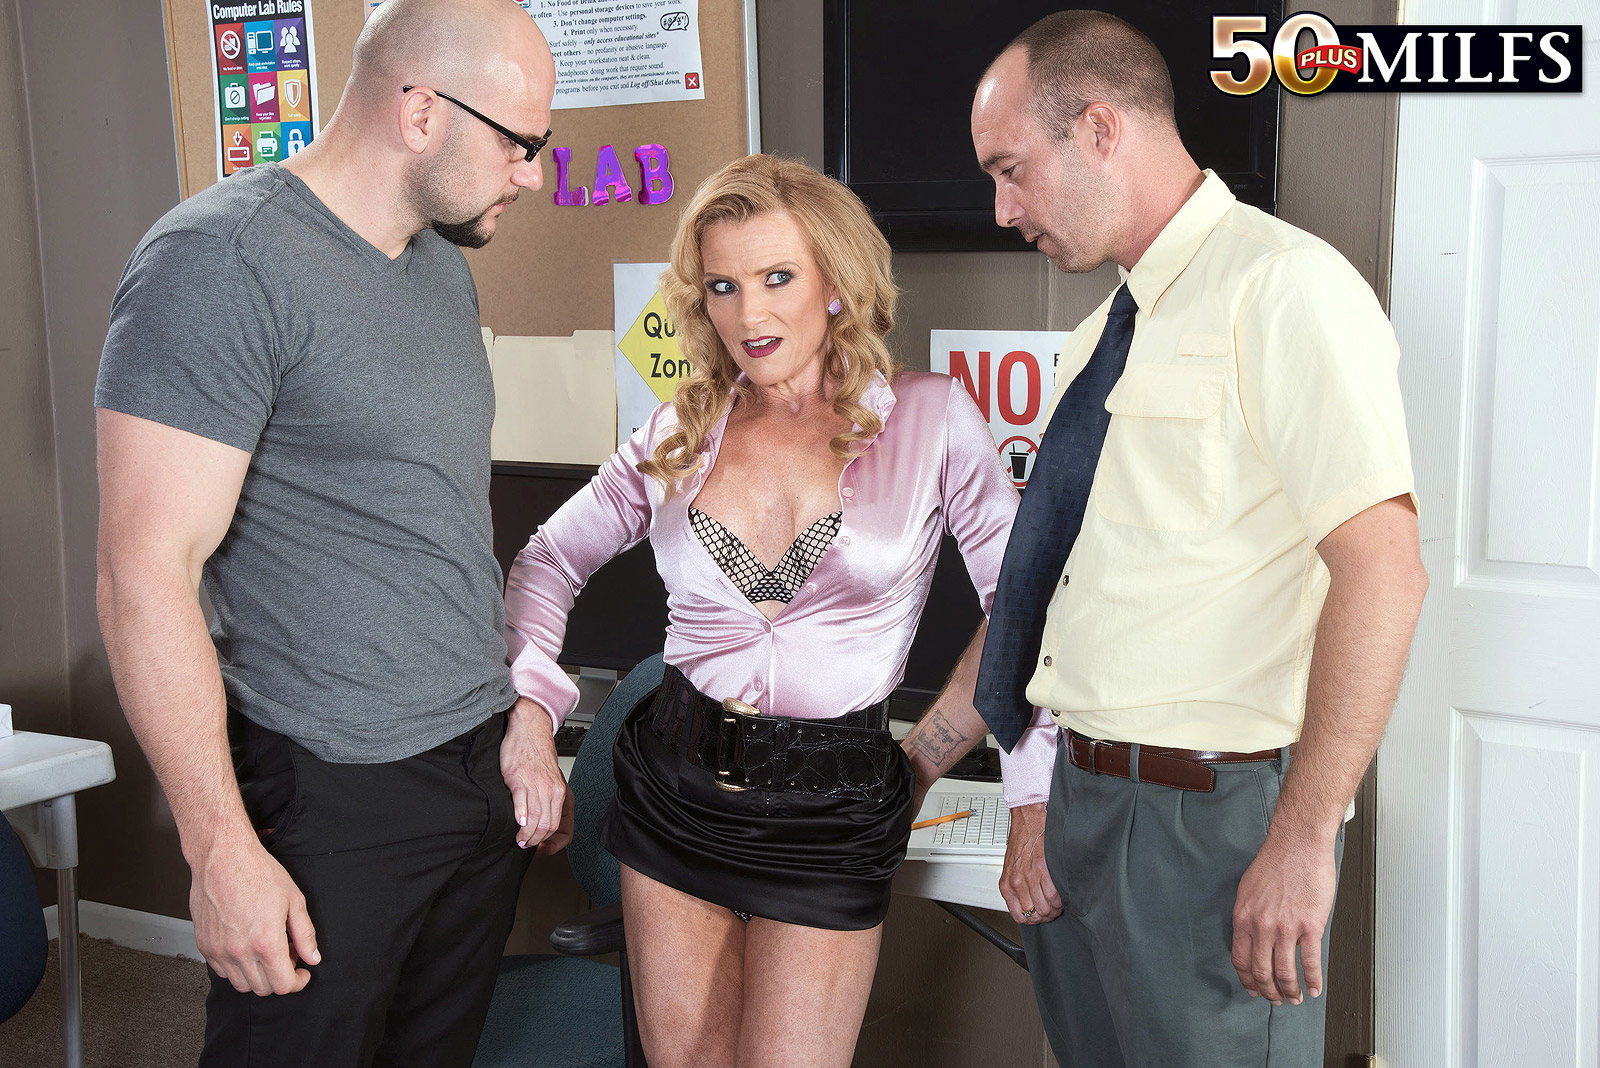 slutty mature secretary armanda sandwiched sexed by two eager nerds